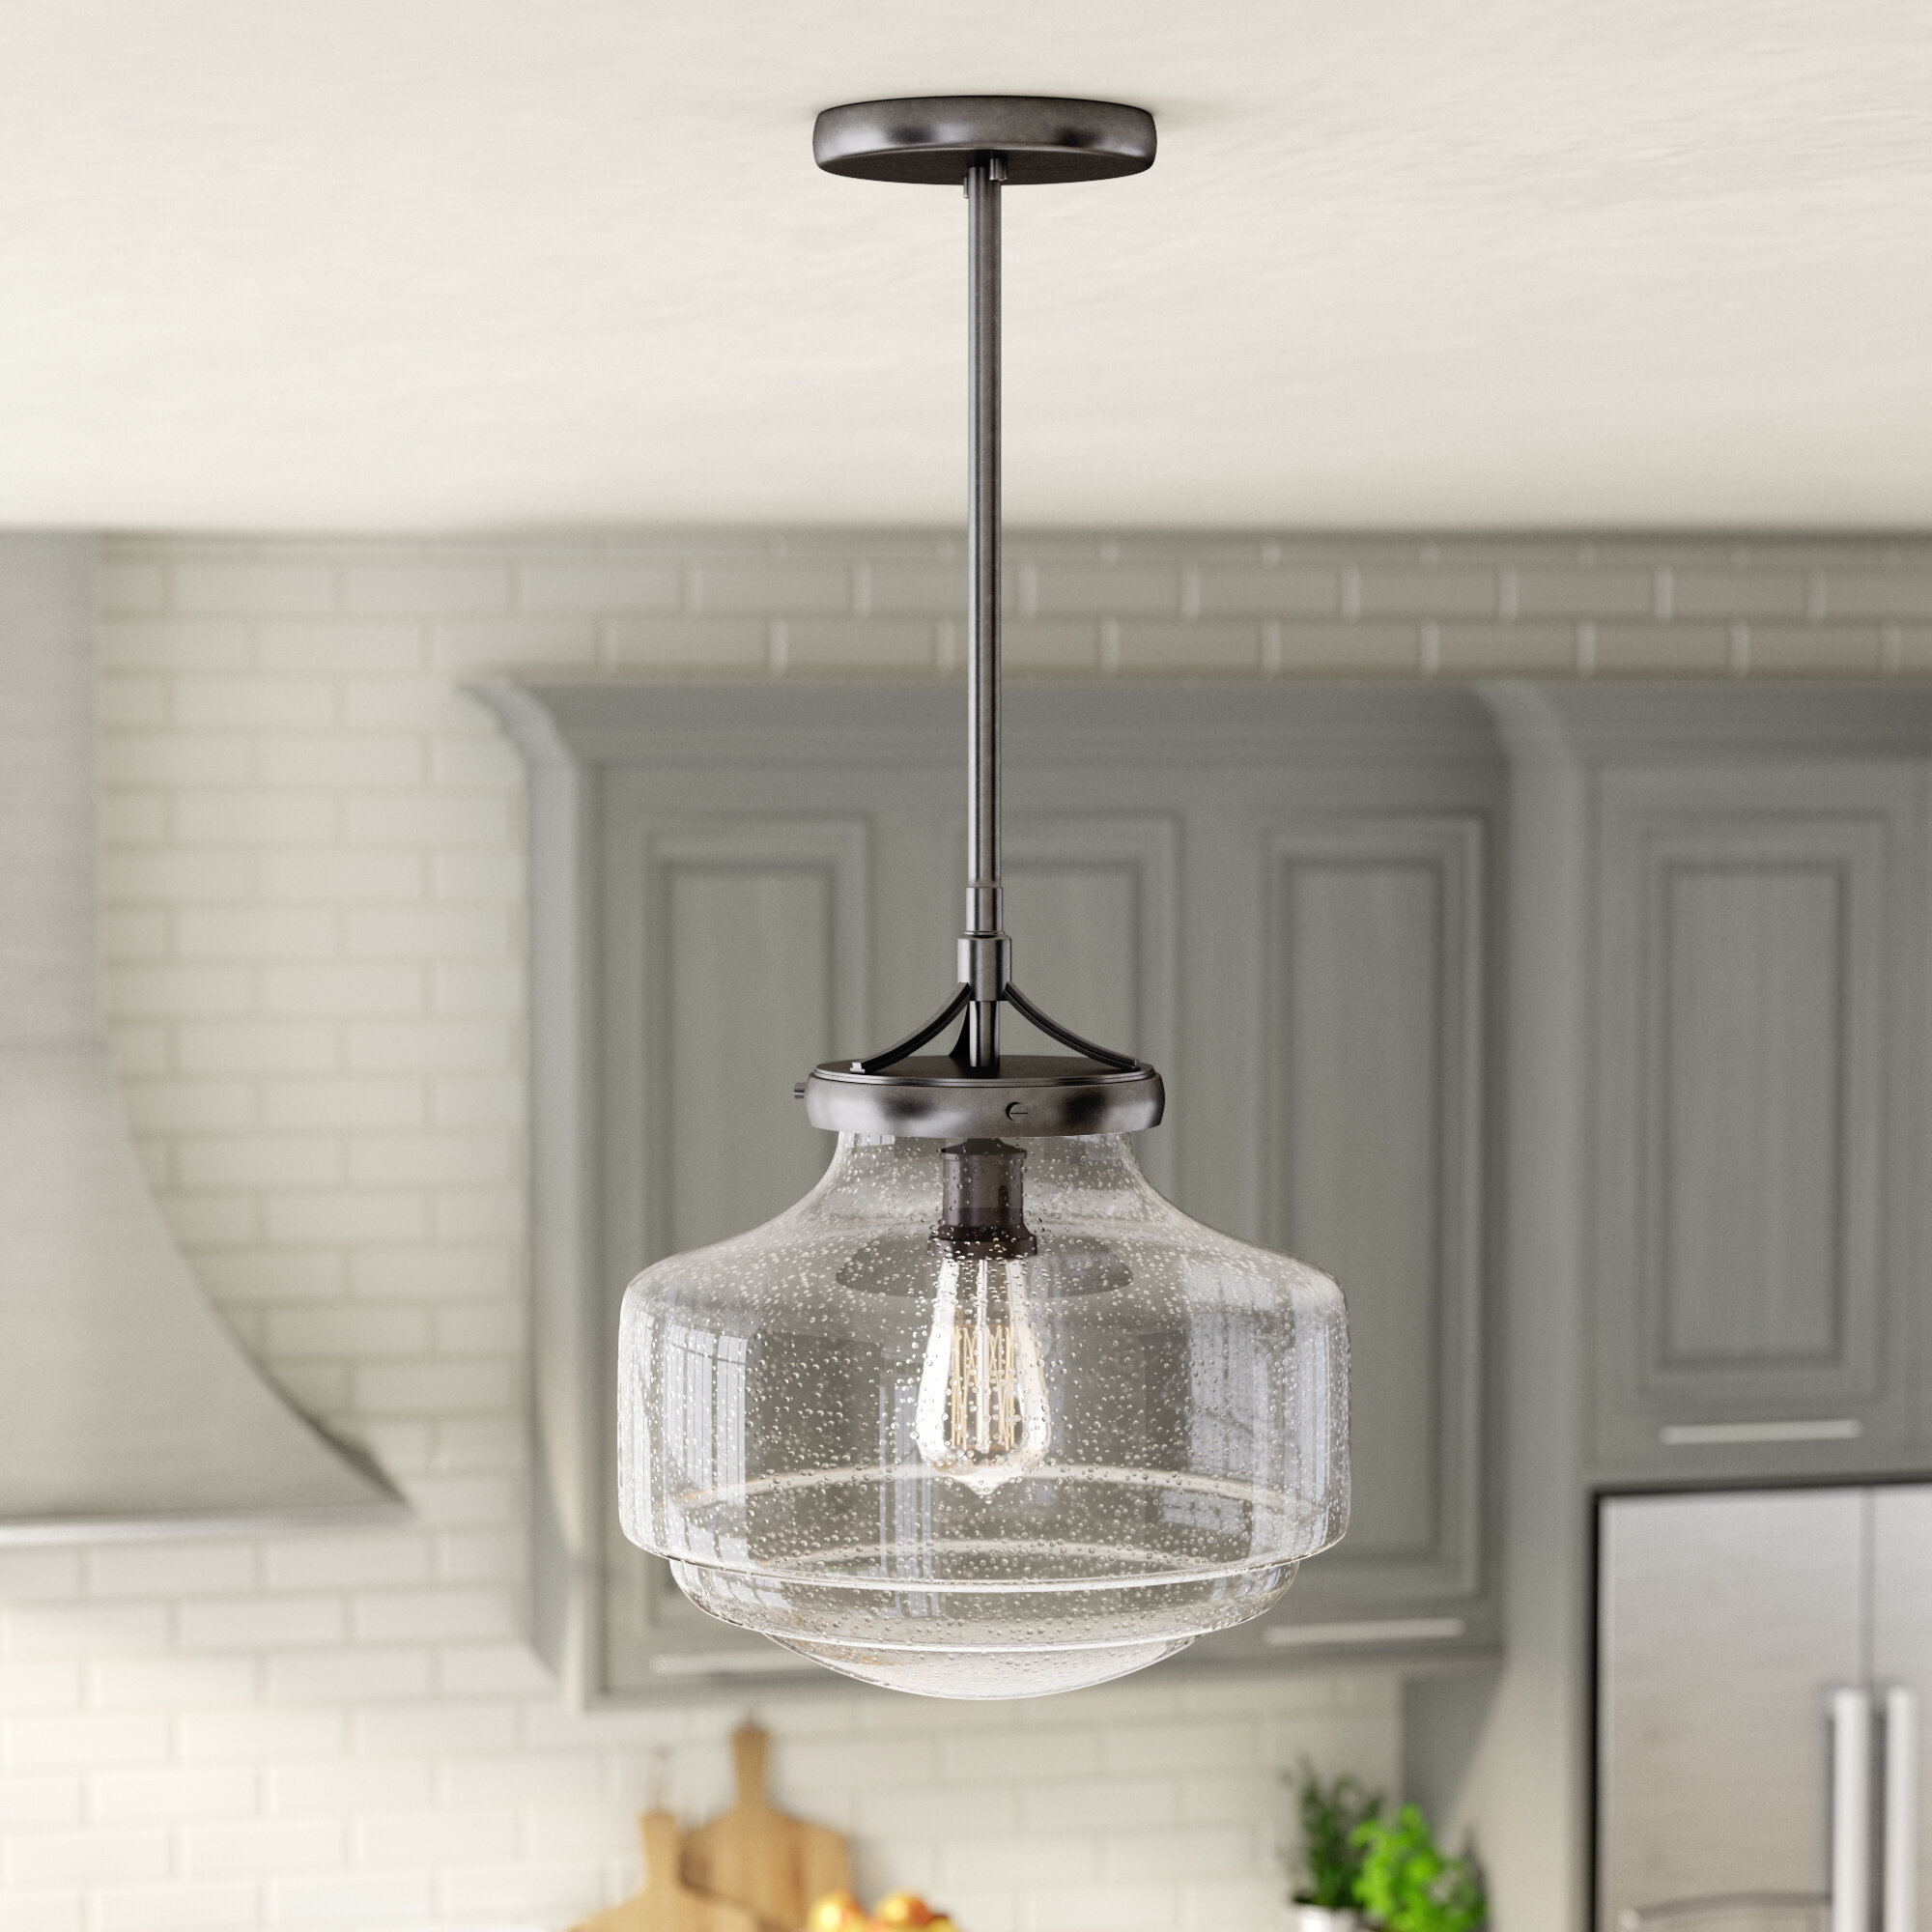 Laurel Foundry Modern Farmhouse Light 1 Schoolhouse Pendant Reviews Wayfair